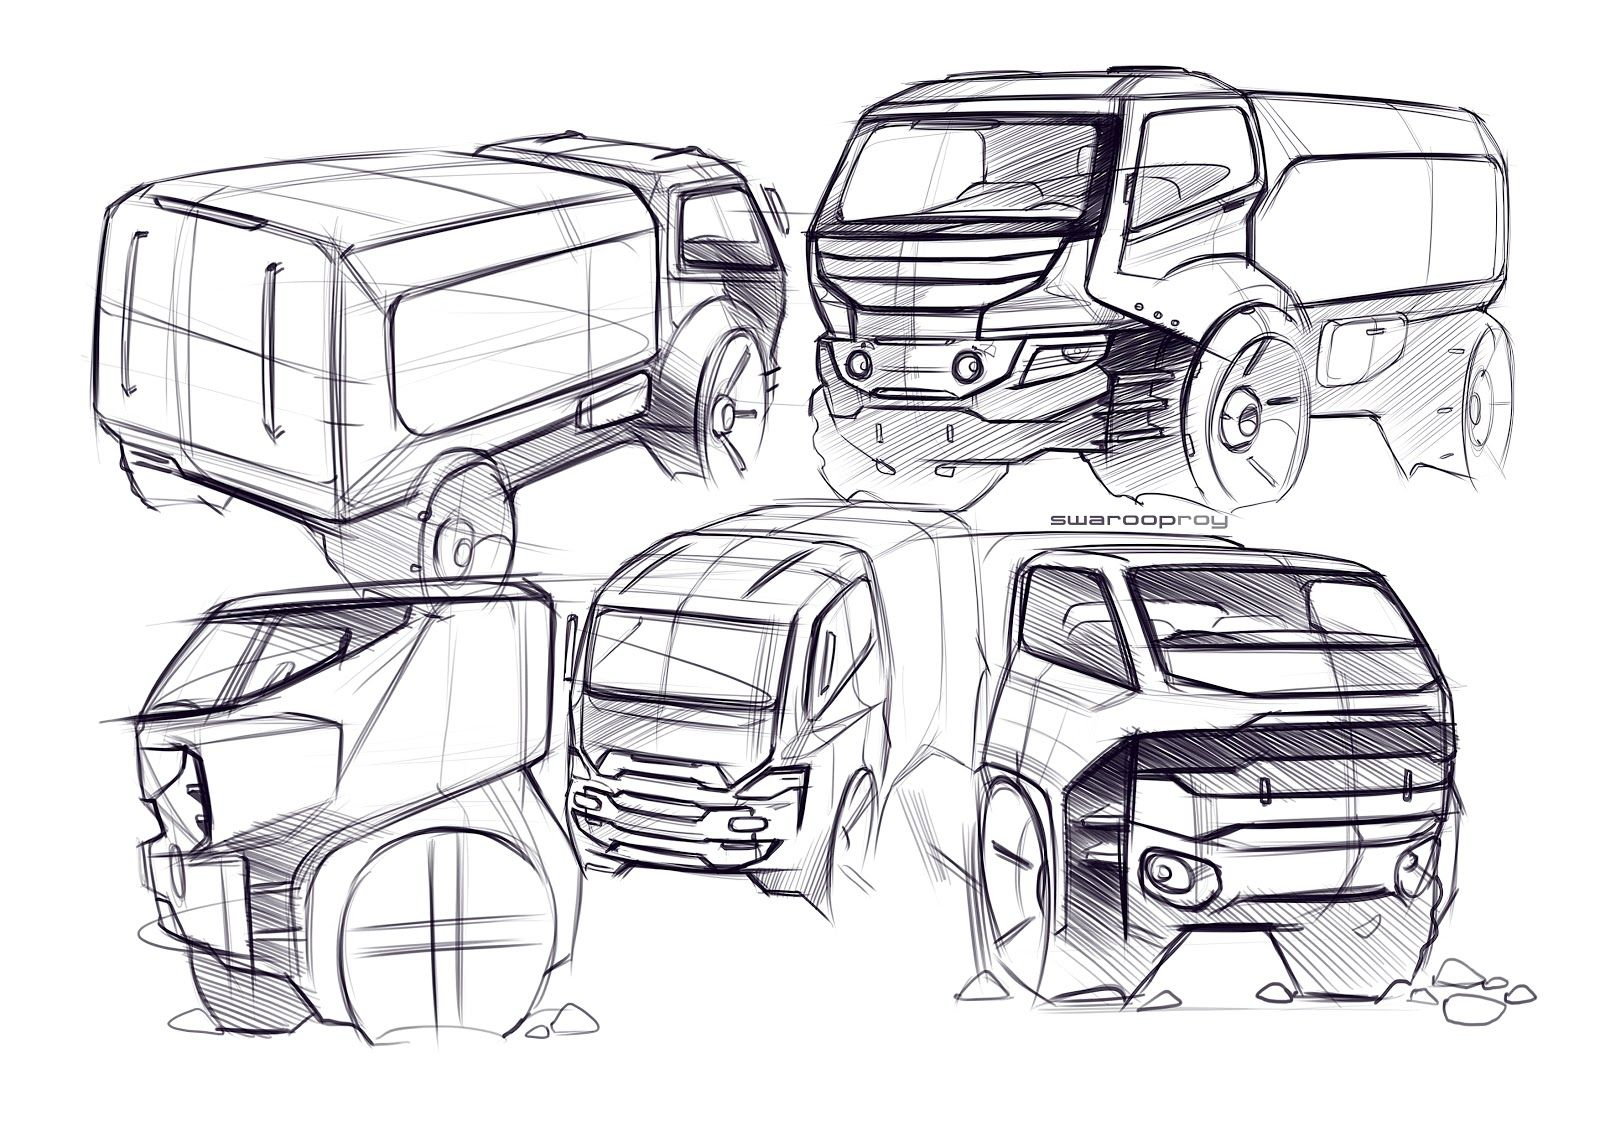 truck sketches by Swaroop Roy   HOT SKETCHES   Pinterest   Sketches ...